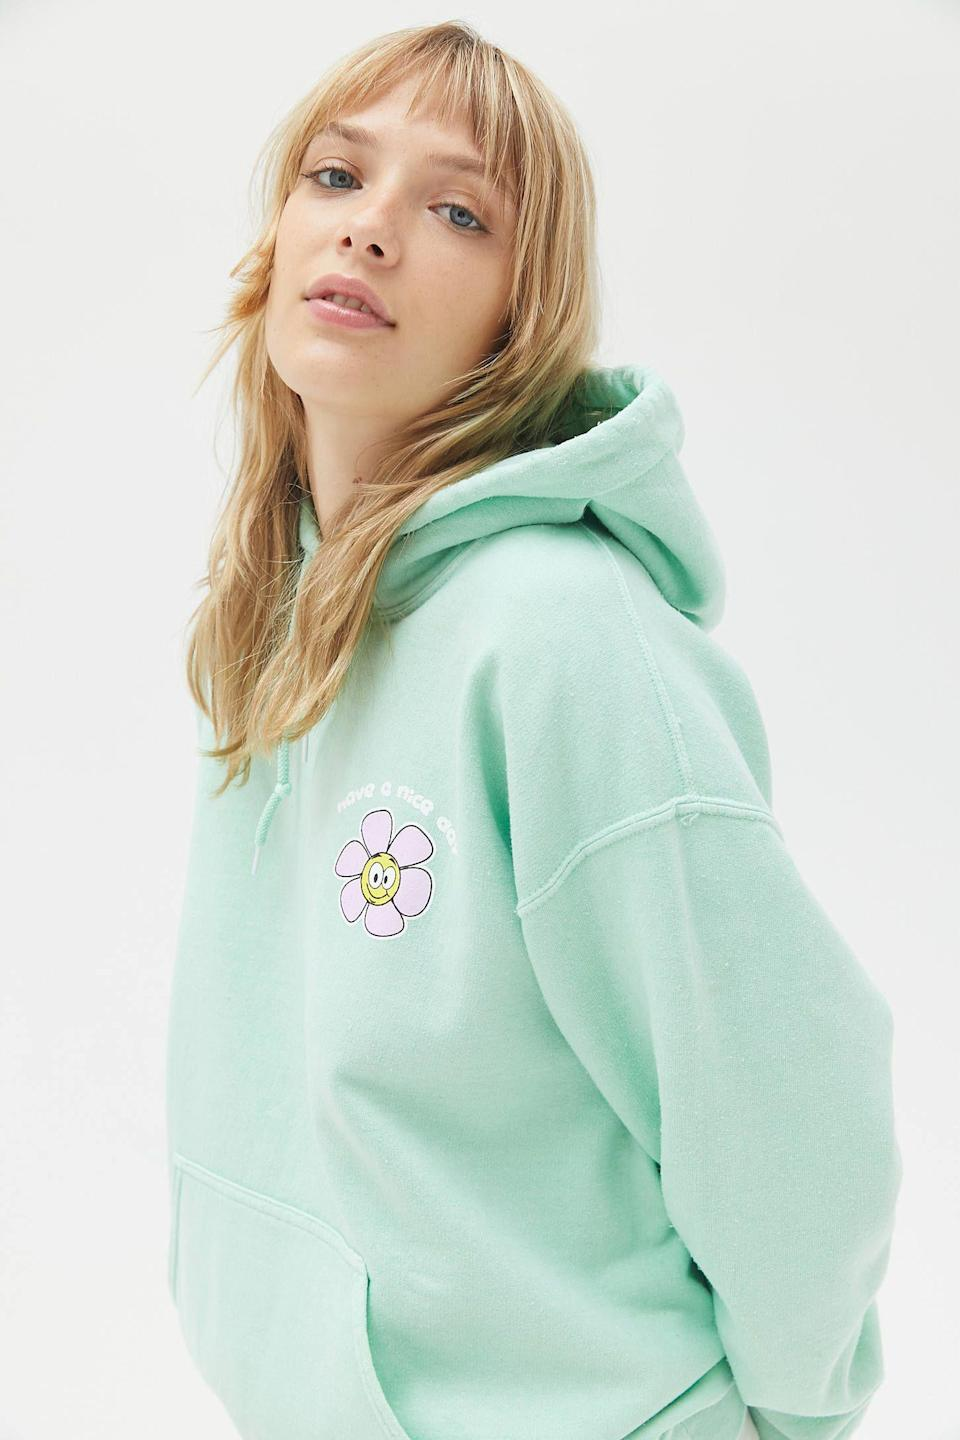 "<p><strong>Urban Outfitters</strong></p><p>urbanoutfitters.com</p><p><strong>$39.99</strong></p><p><a href=""https://go.redirectingat.com?id=74968X1596630&url=https%3A%2F%2Fwww.urbanoutfitters.com%2Fshop%2Fhave-a-nice-day-daisy-hoodie-sweatshirt&sref=https%3A%2F%2Fwww.seventeen.com%2Ffashion%2Fg34701248%2Furban-outfitters-2020-black-friday-sale%2F"" rel=""nofollow noopener"" target=""_blank"" data-ylk=""slk:Shop Now"" class=""link rapid-noclick-resp"">Shop Now</a></p><p>This hoodie just boosted my mood and cleared my breakouts.</p>"